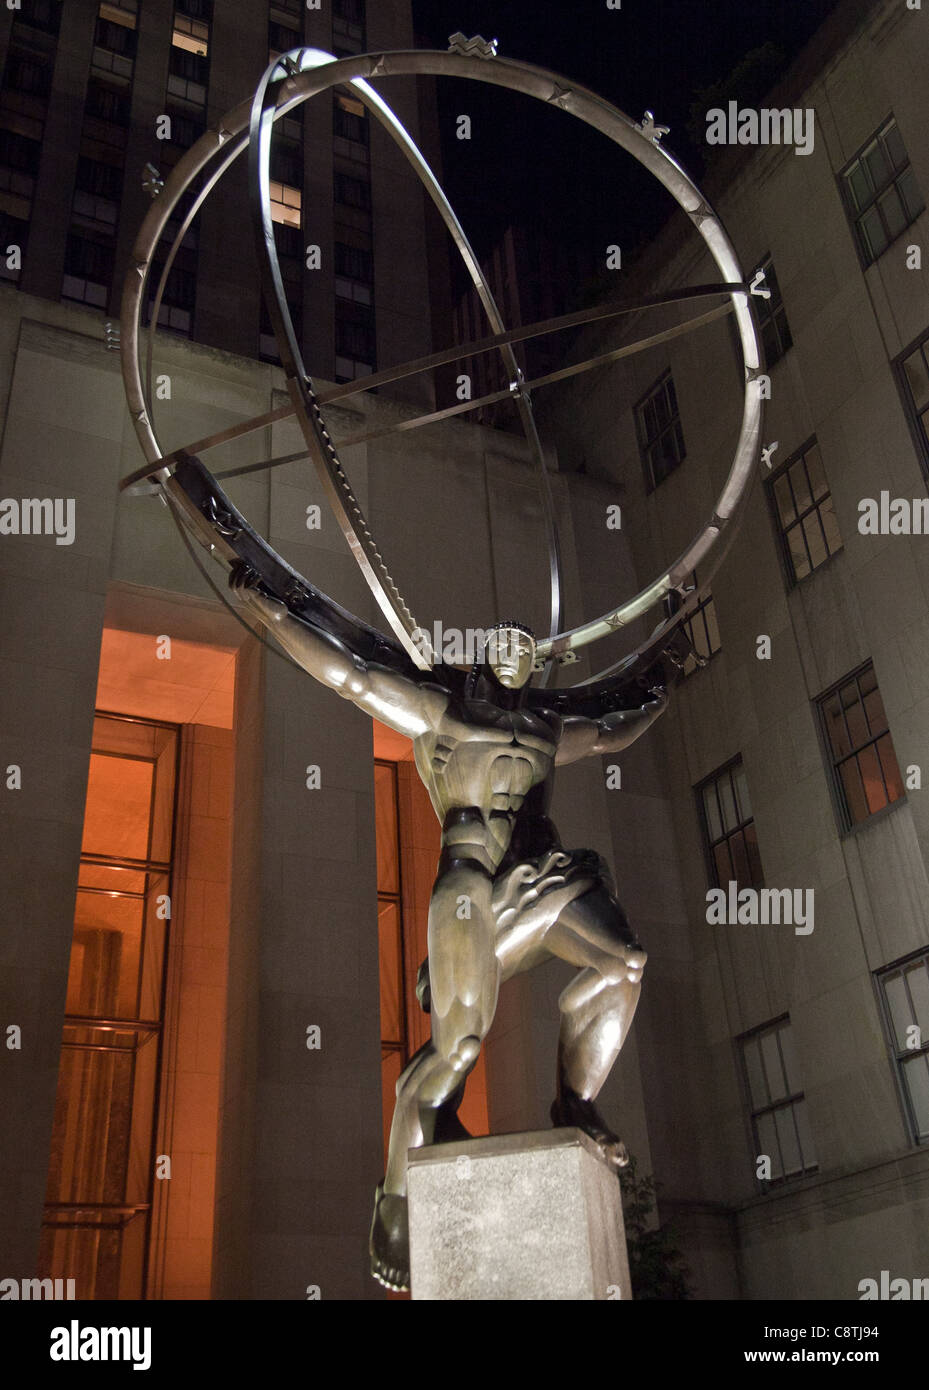 Statue of Atlas by Lee Lawrie at Rockafeller Center in New York City - Stock Image